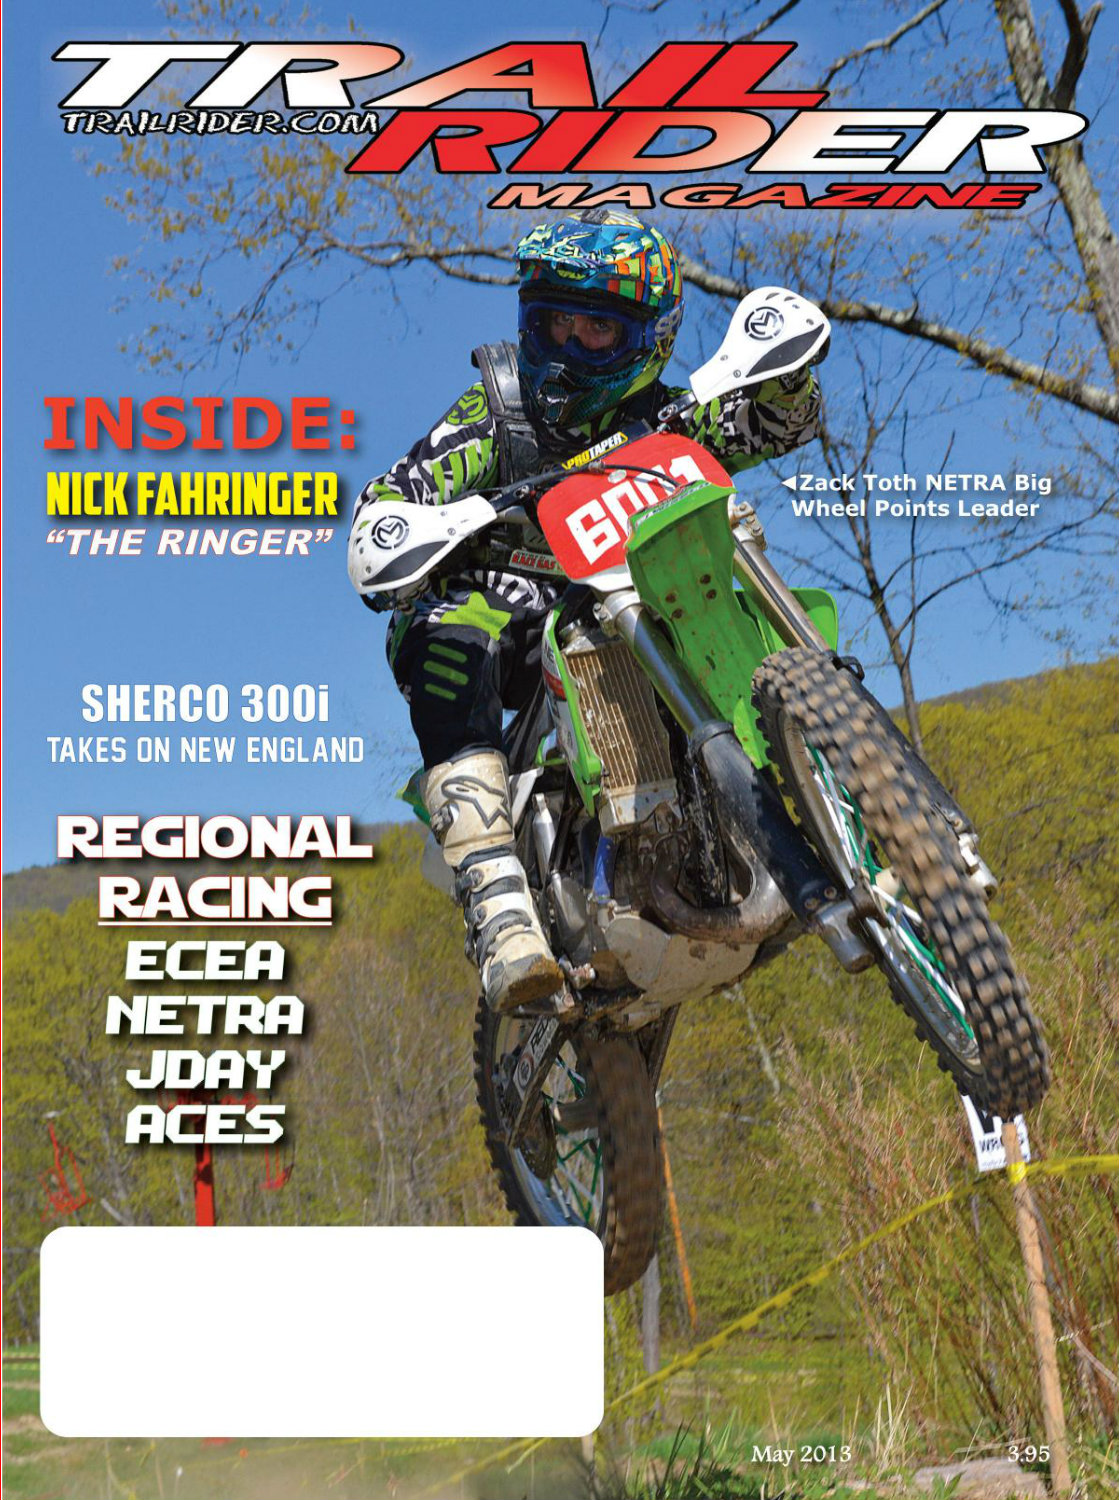 Zack Toth on the May 2013 Trail Rider cover